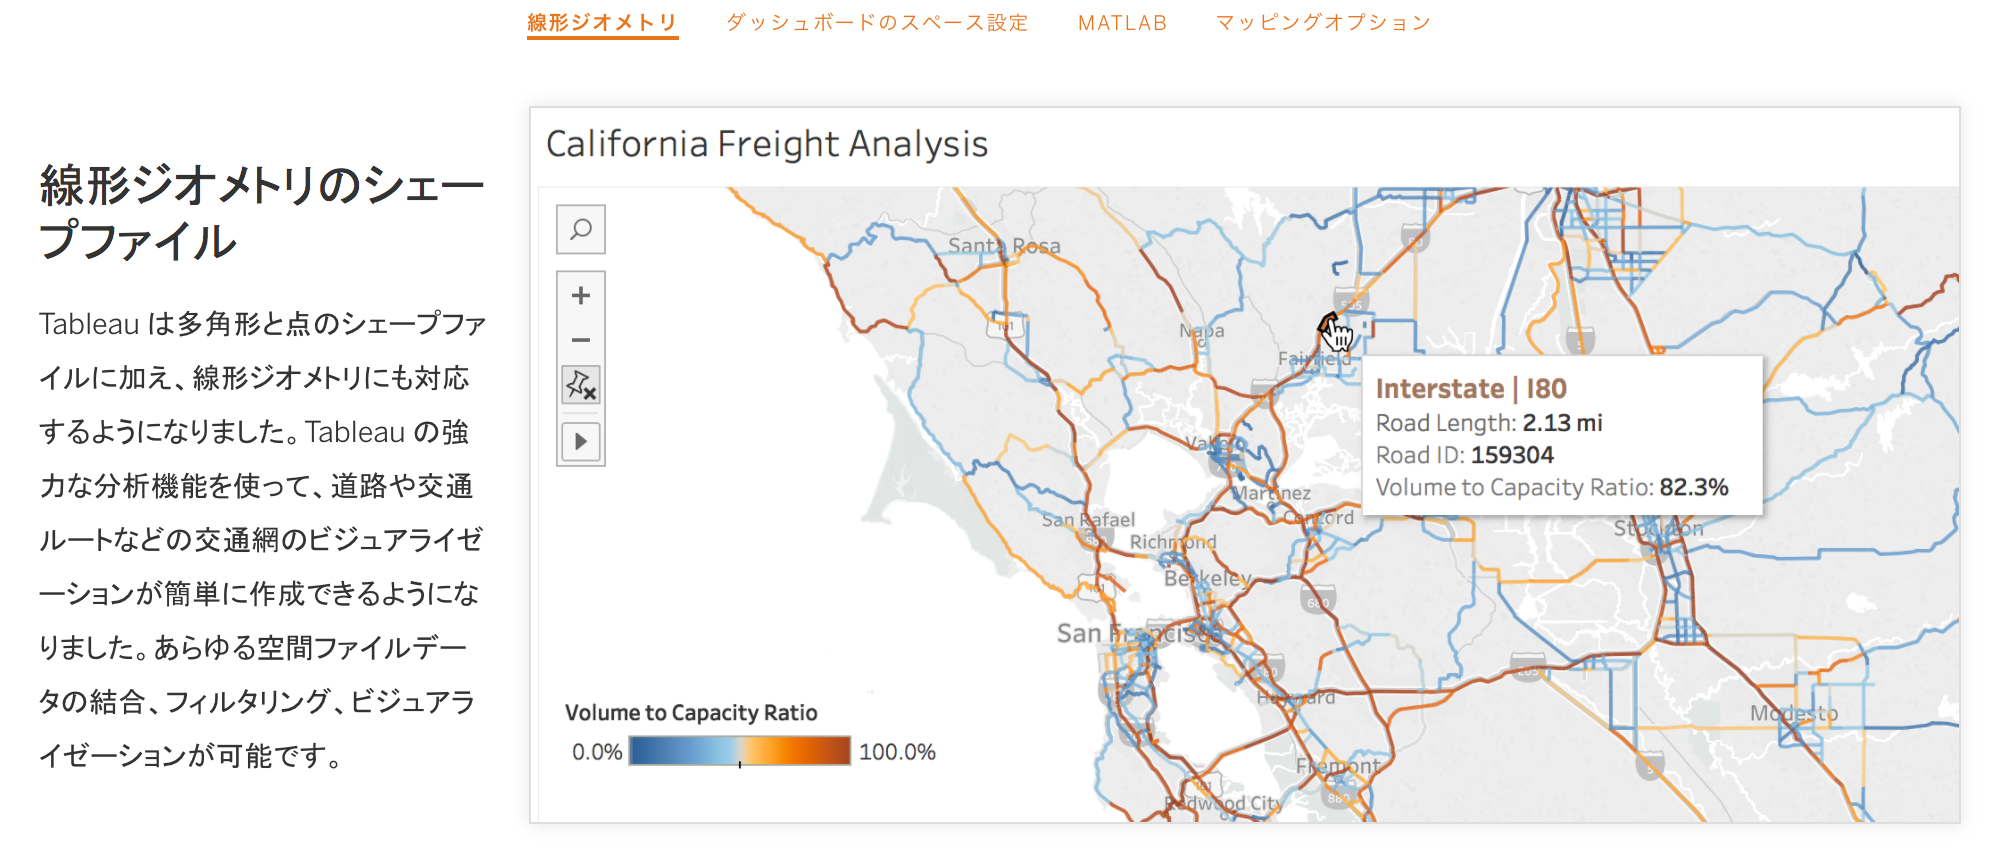 tableau104-new-features-linear-geometory-shapefile_00